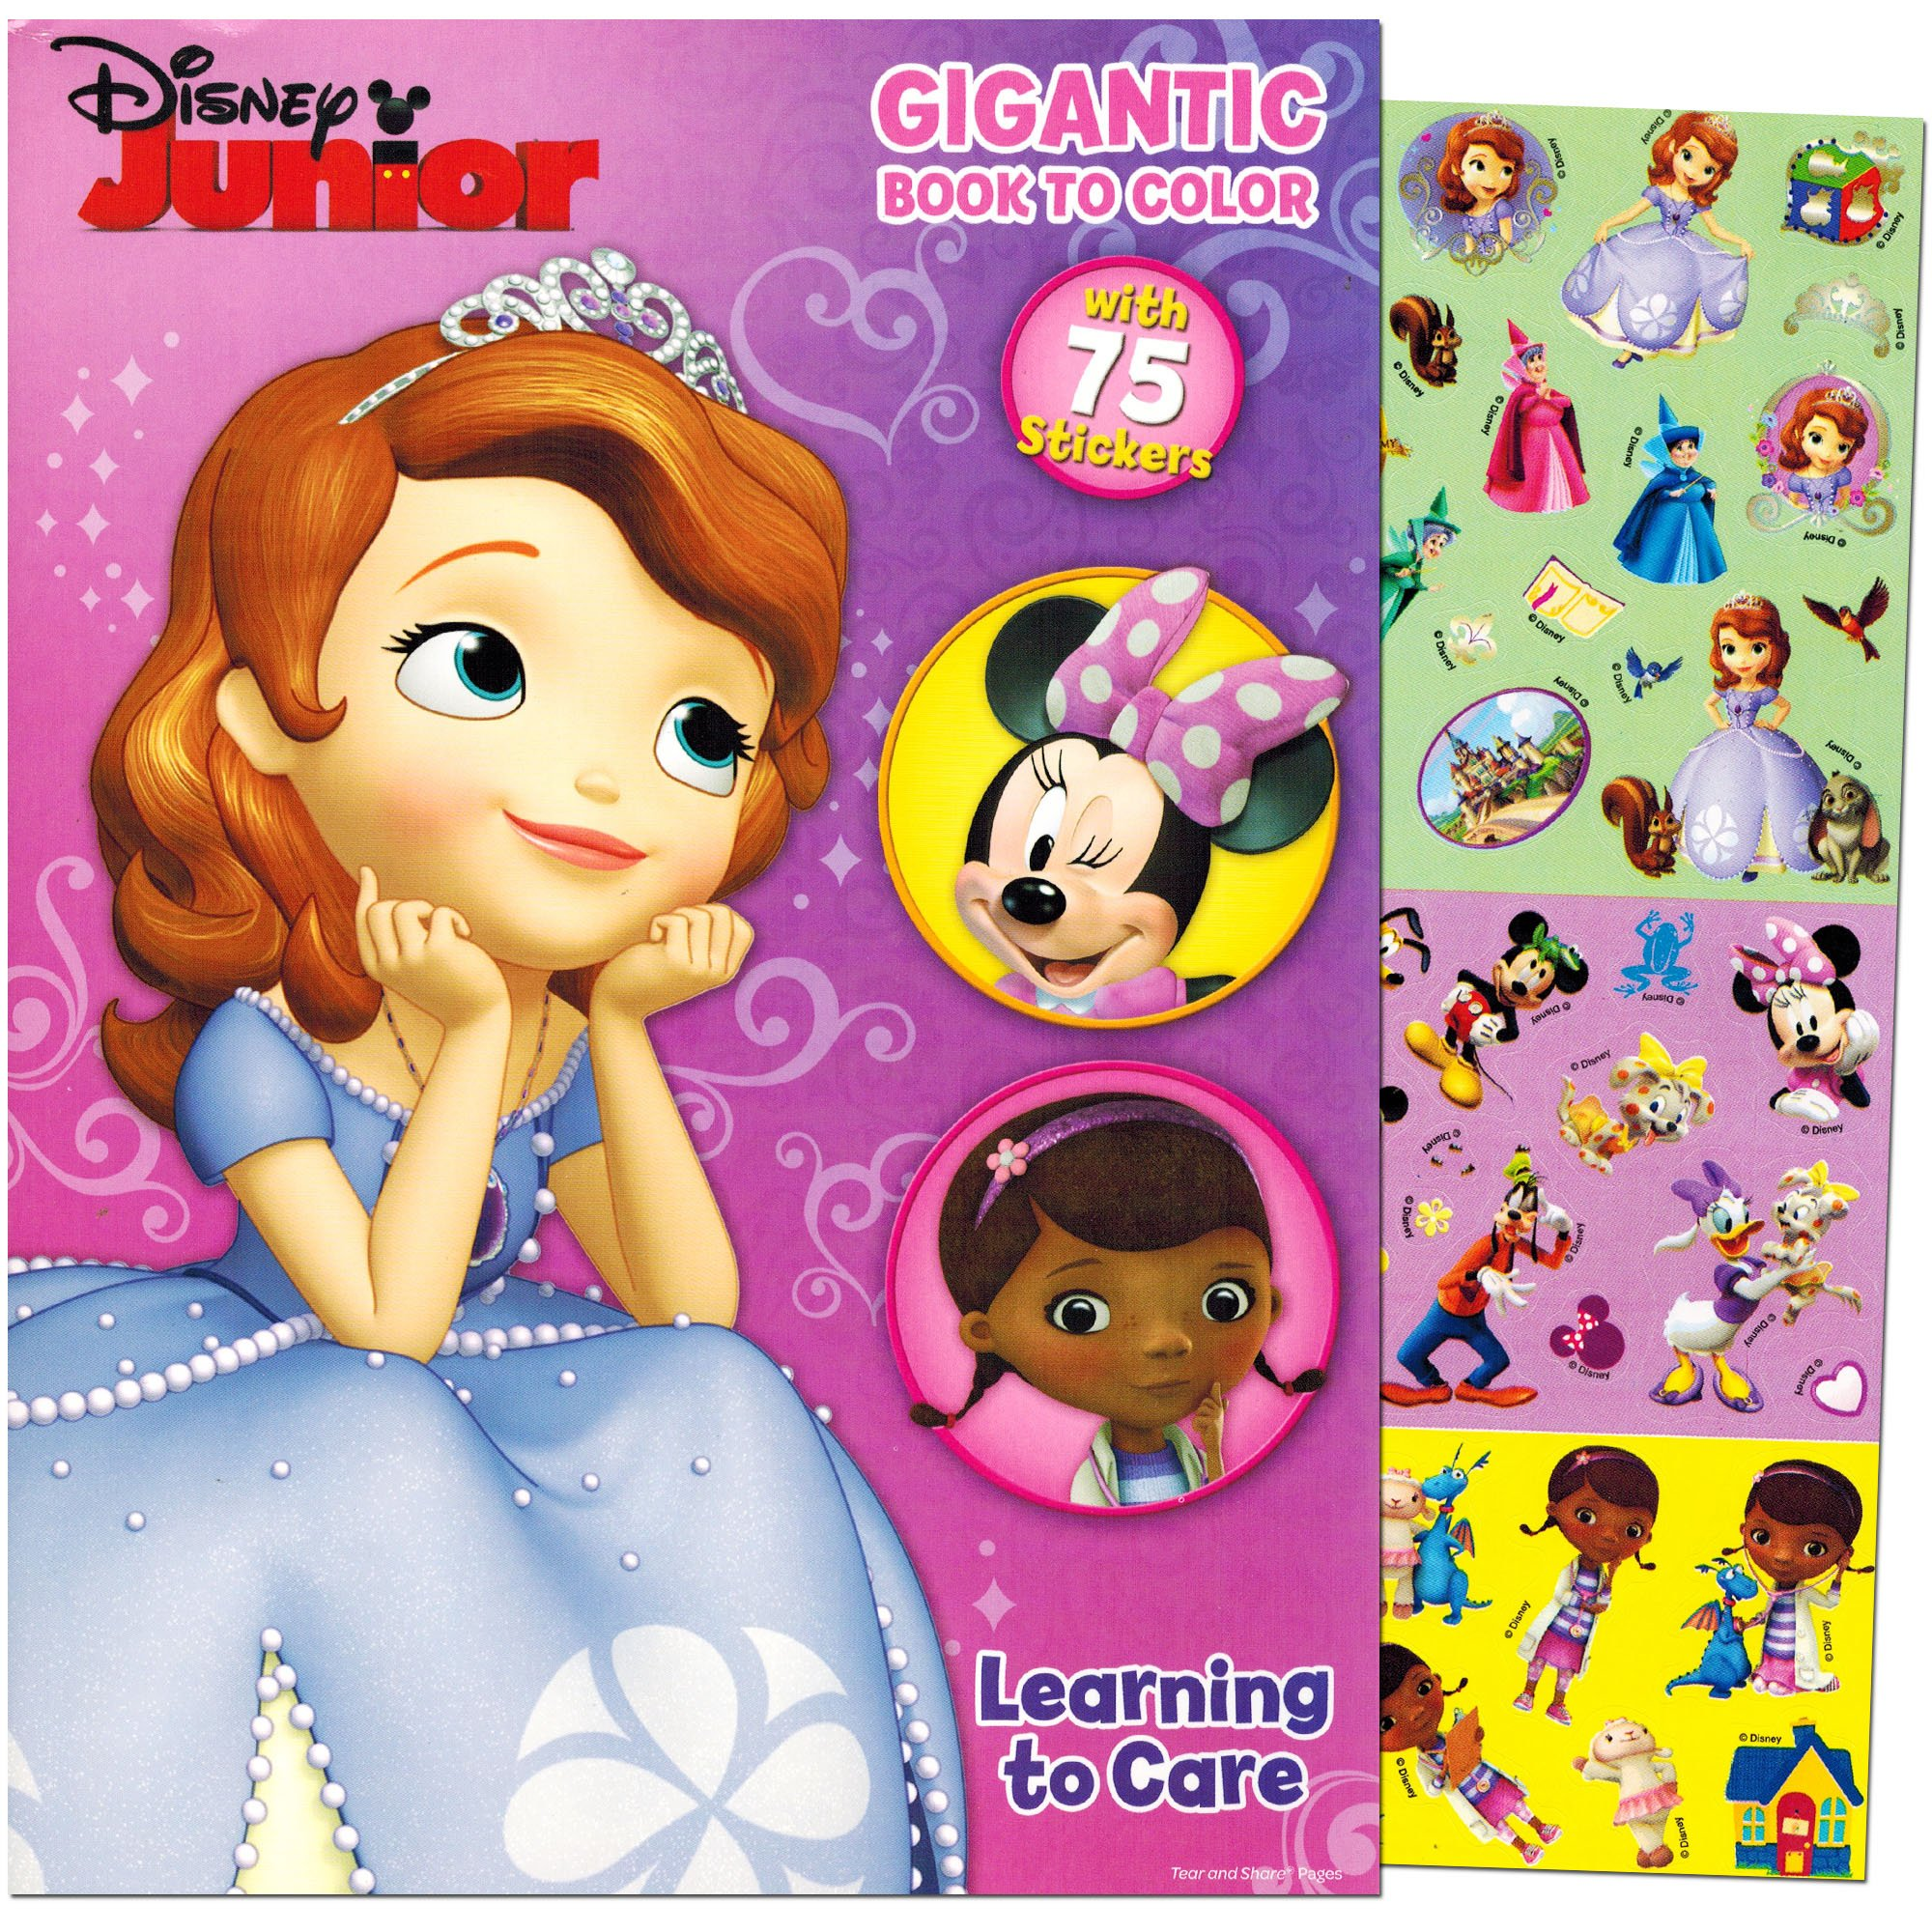 Disney Junior Gigantic Coloring Book For Girls With Stickers 224 Pages Featuring Sofia The